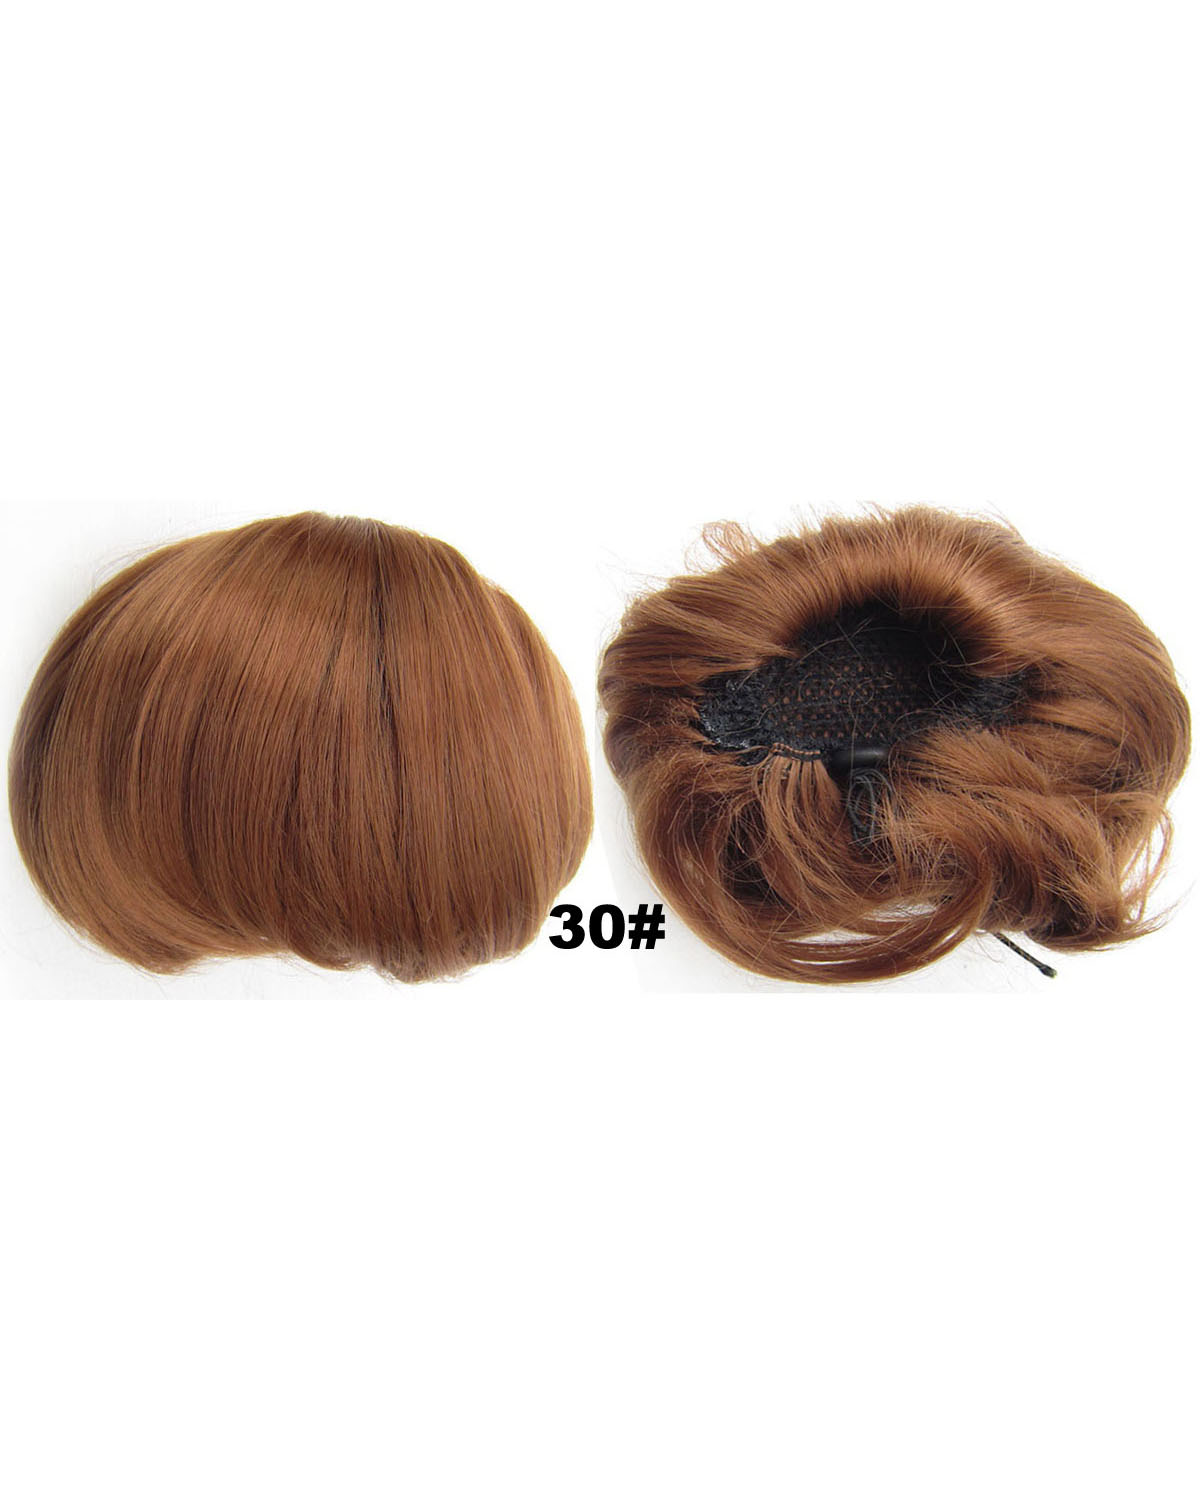 Ladies Hot-sale Straight Short Hair Buns Drawstring Synthetic Hair Extension Bride Scrunchies 30#